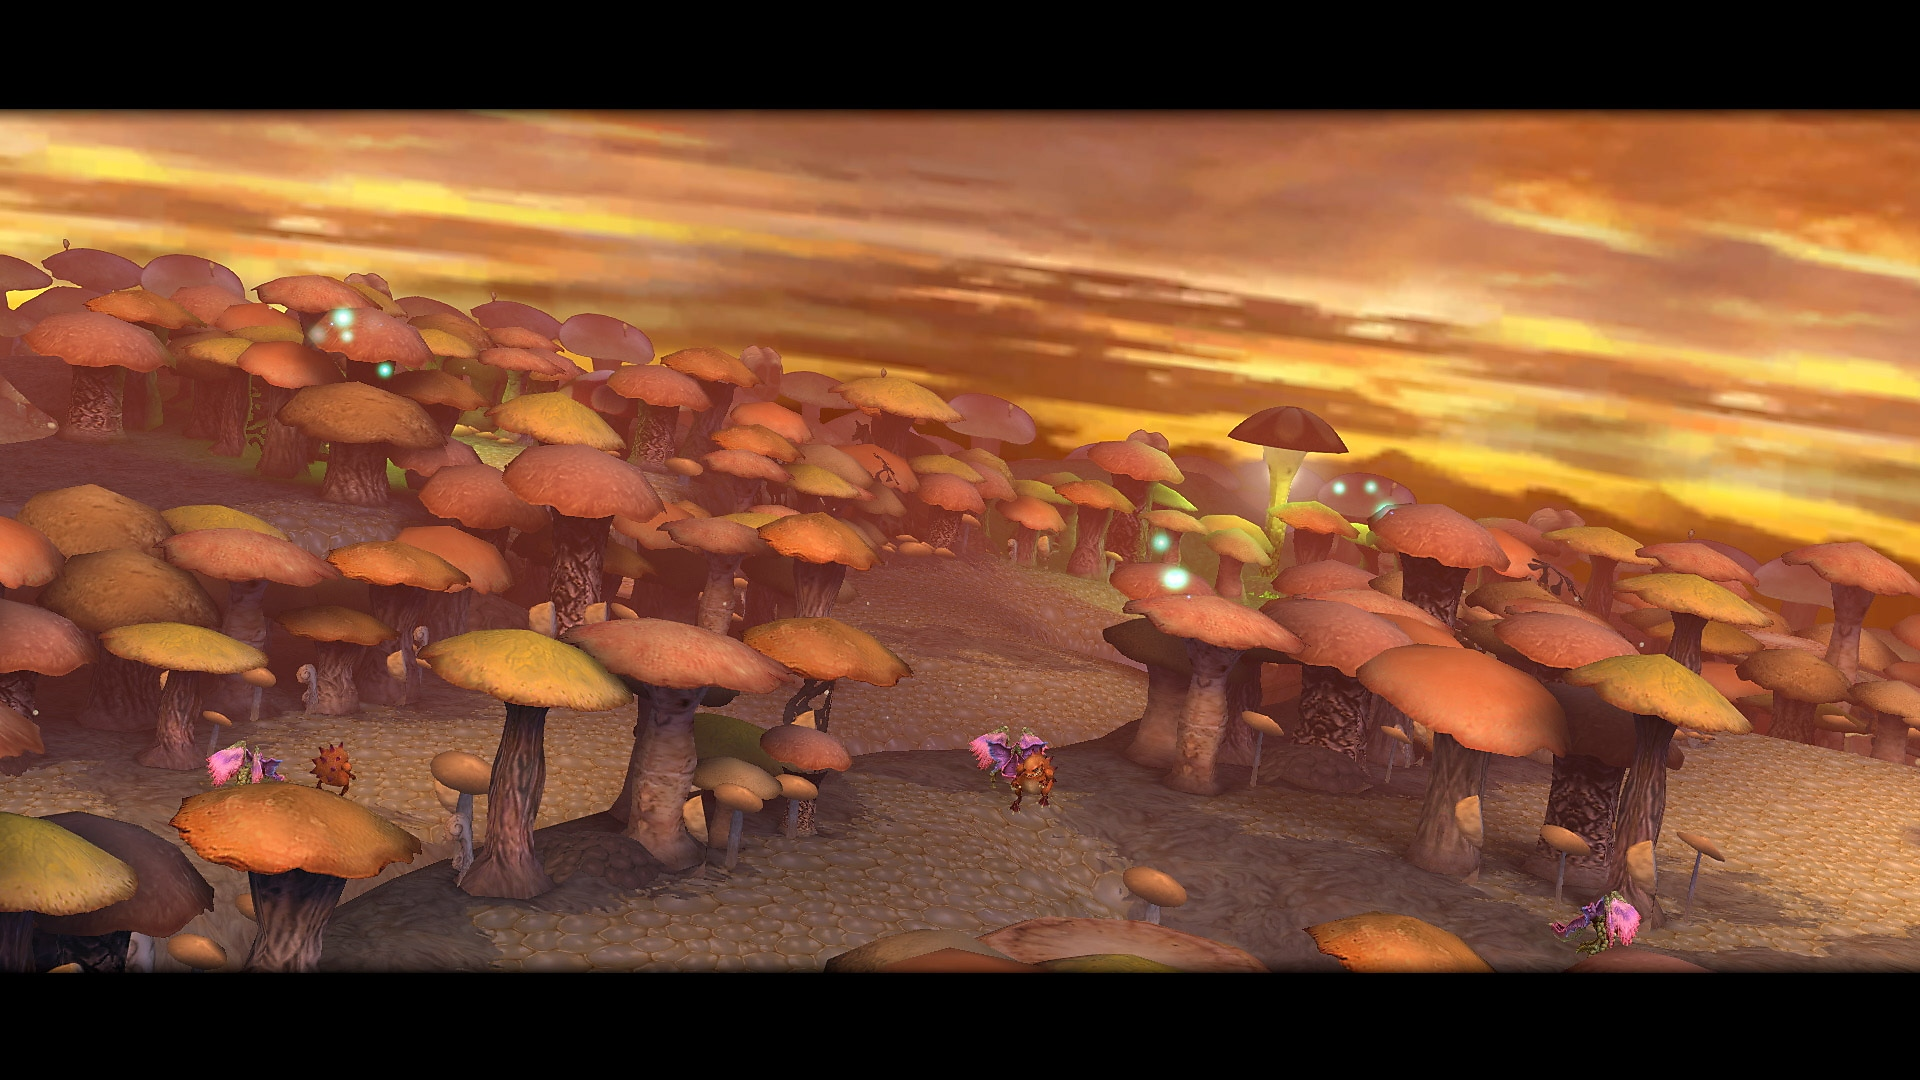 Final Fantasy Crystal Chronicles remastered edition gameplay screenshot